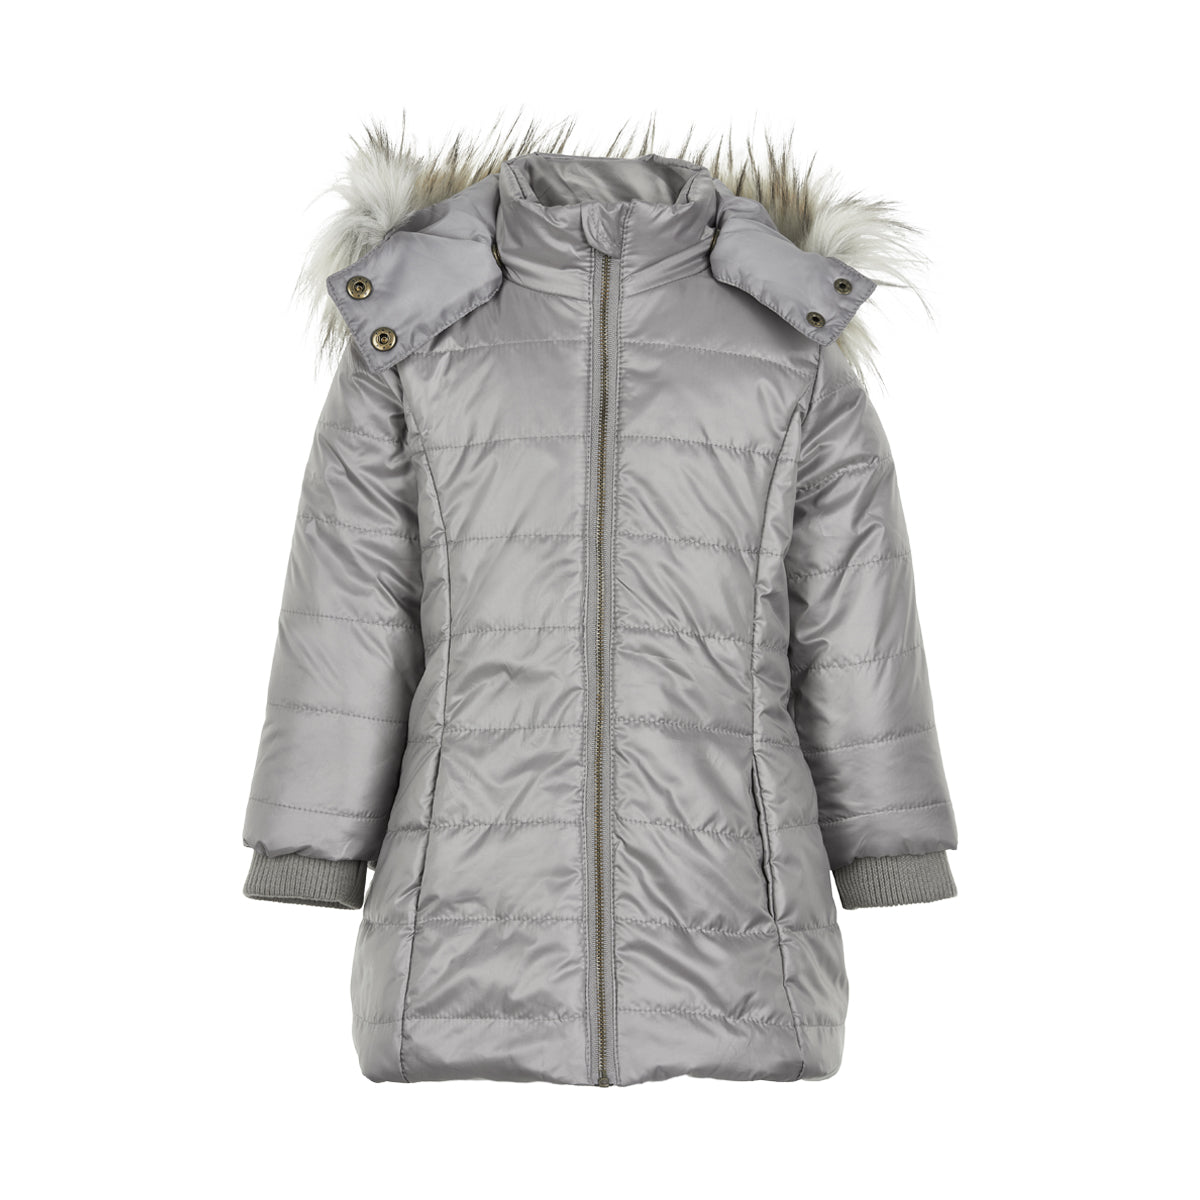 Creamie - Jacket Padded (840002) - Steeple Gray